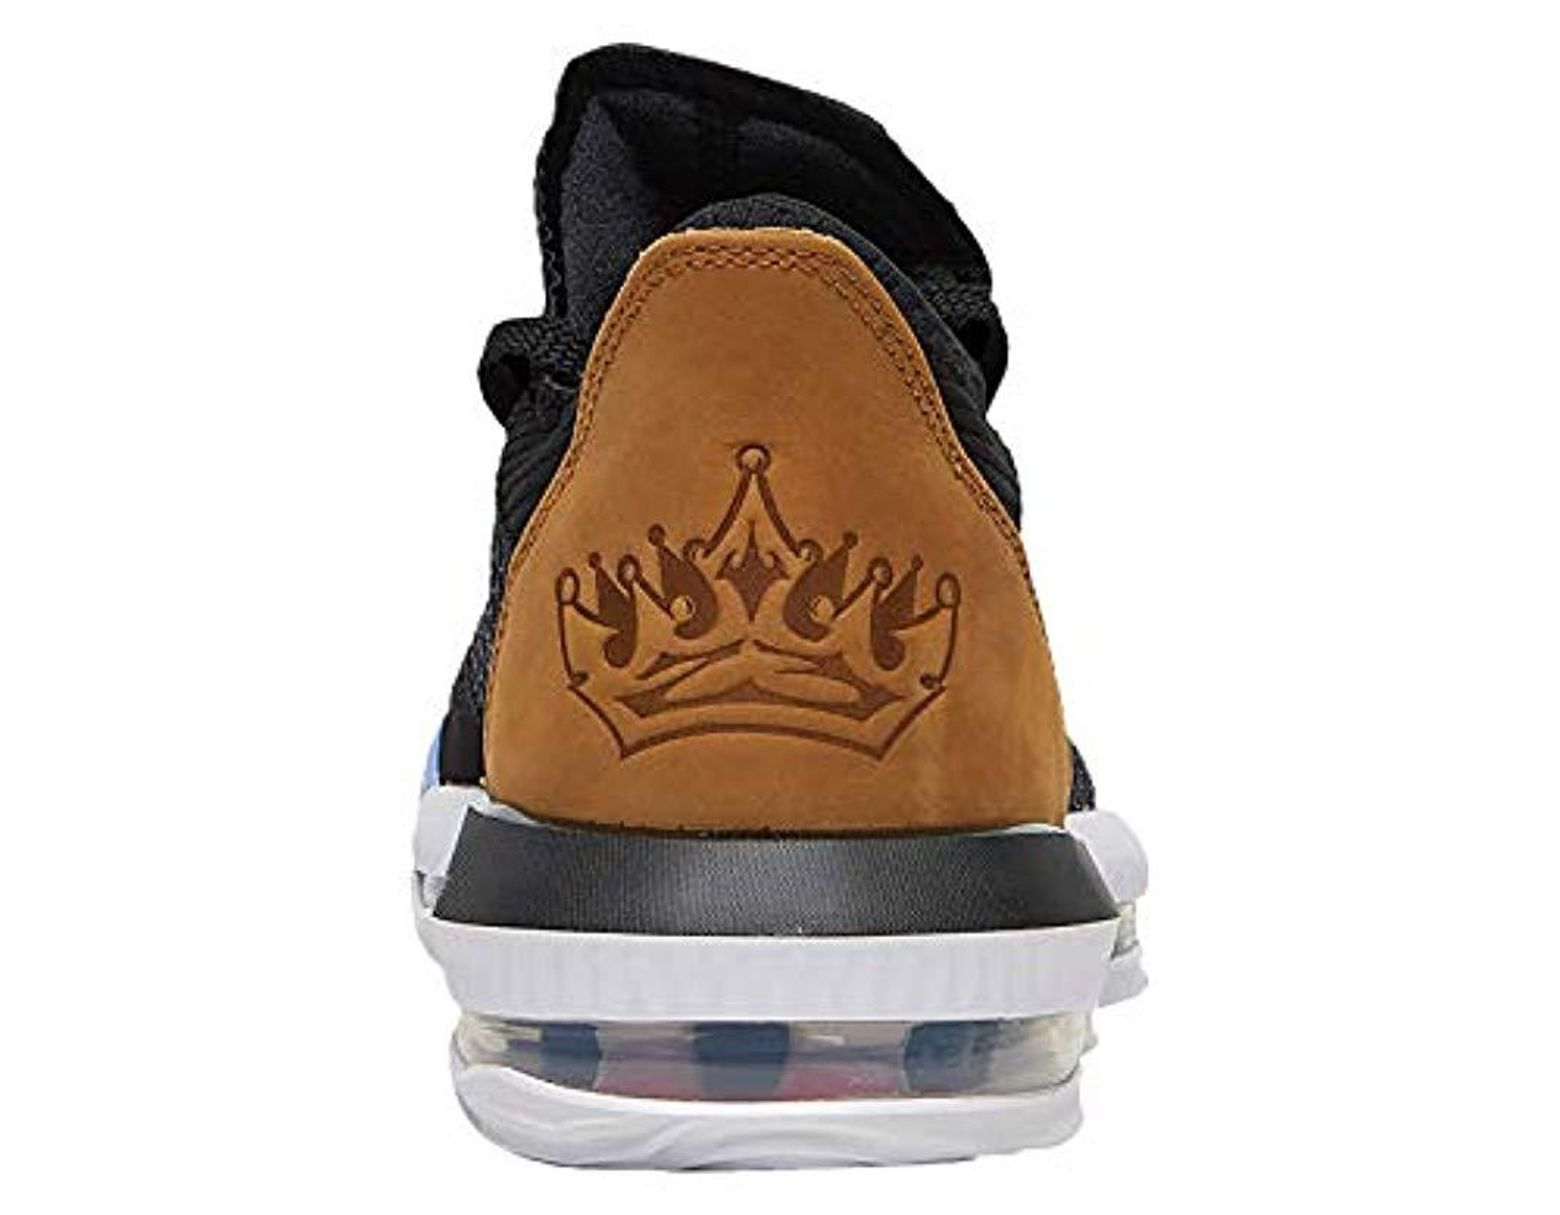 outlet store 5d0e2 53345 Nike Lebron 16 Low Synthetic Basketball Shoes in Black for ...